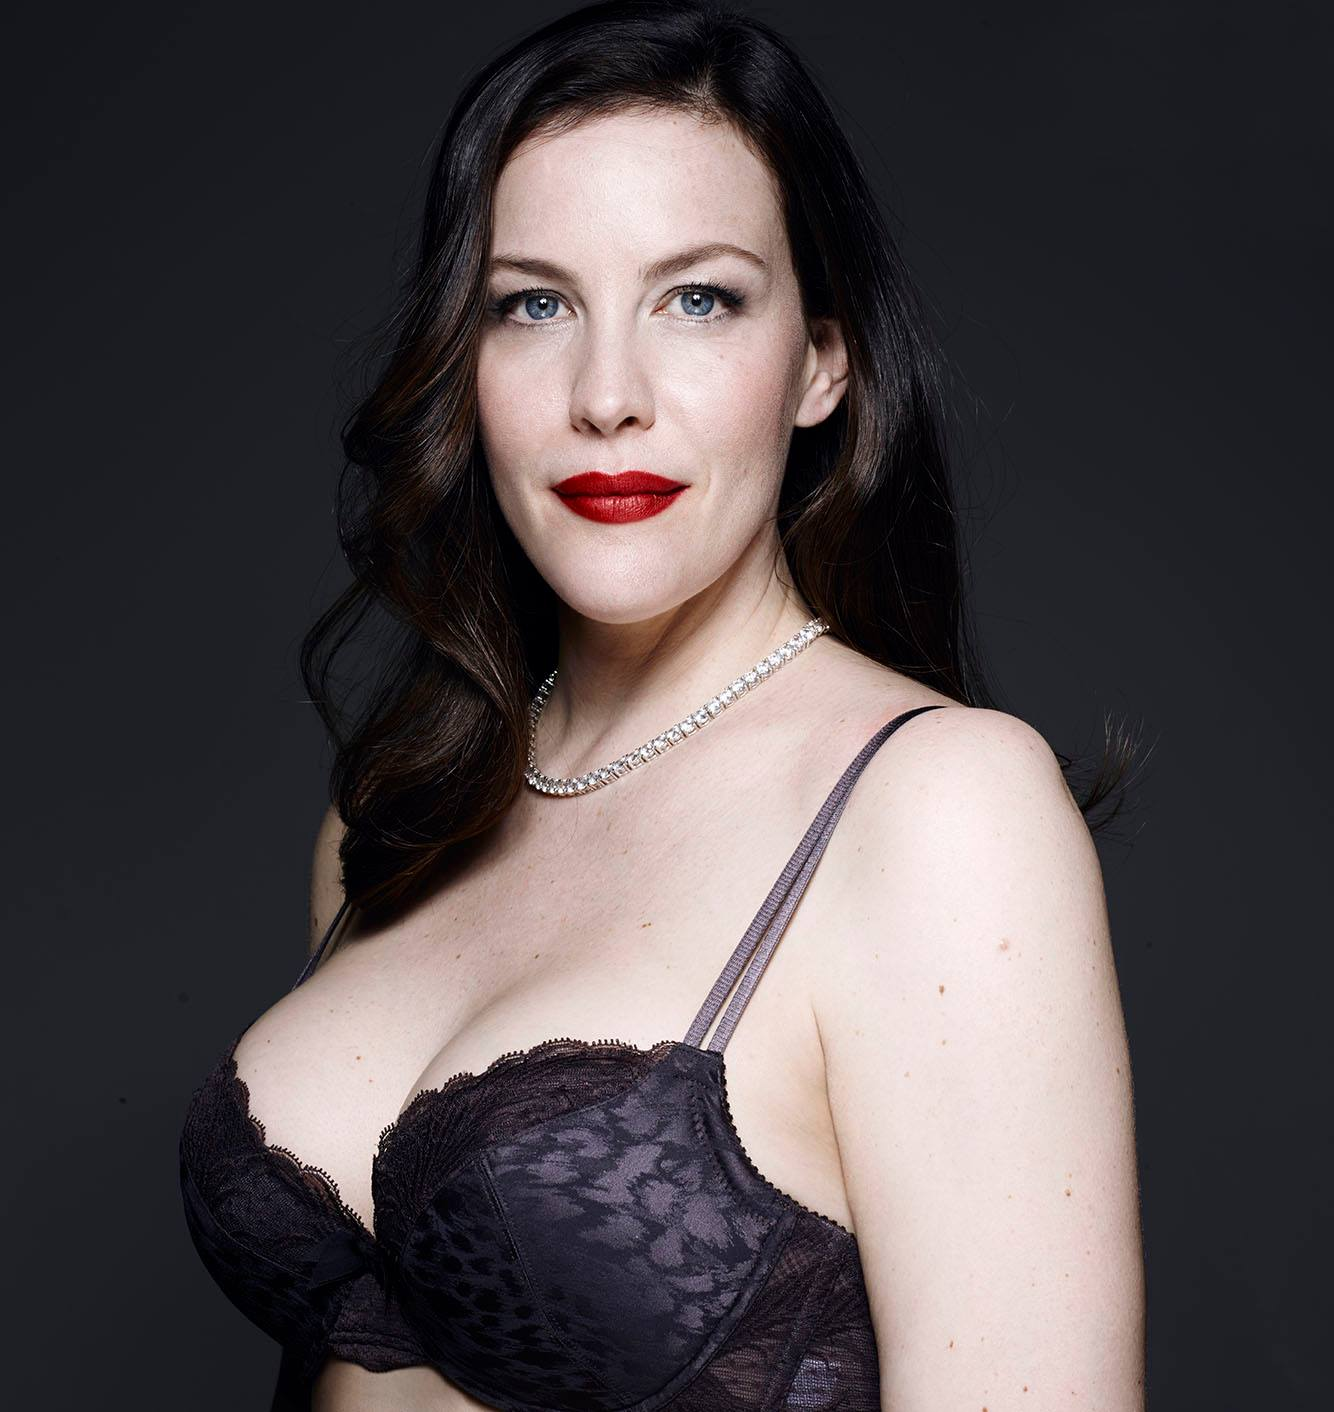 Nude Photos Of Liv Tyler